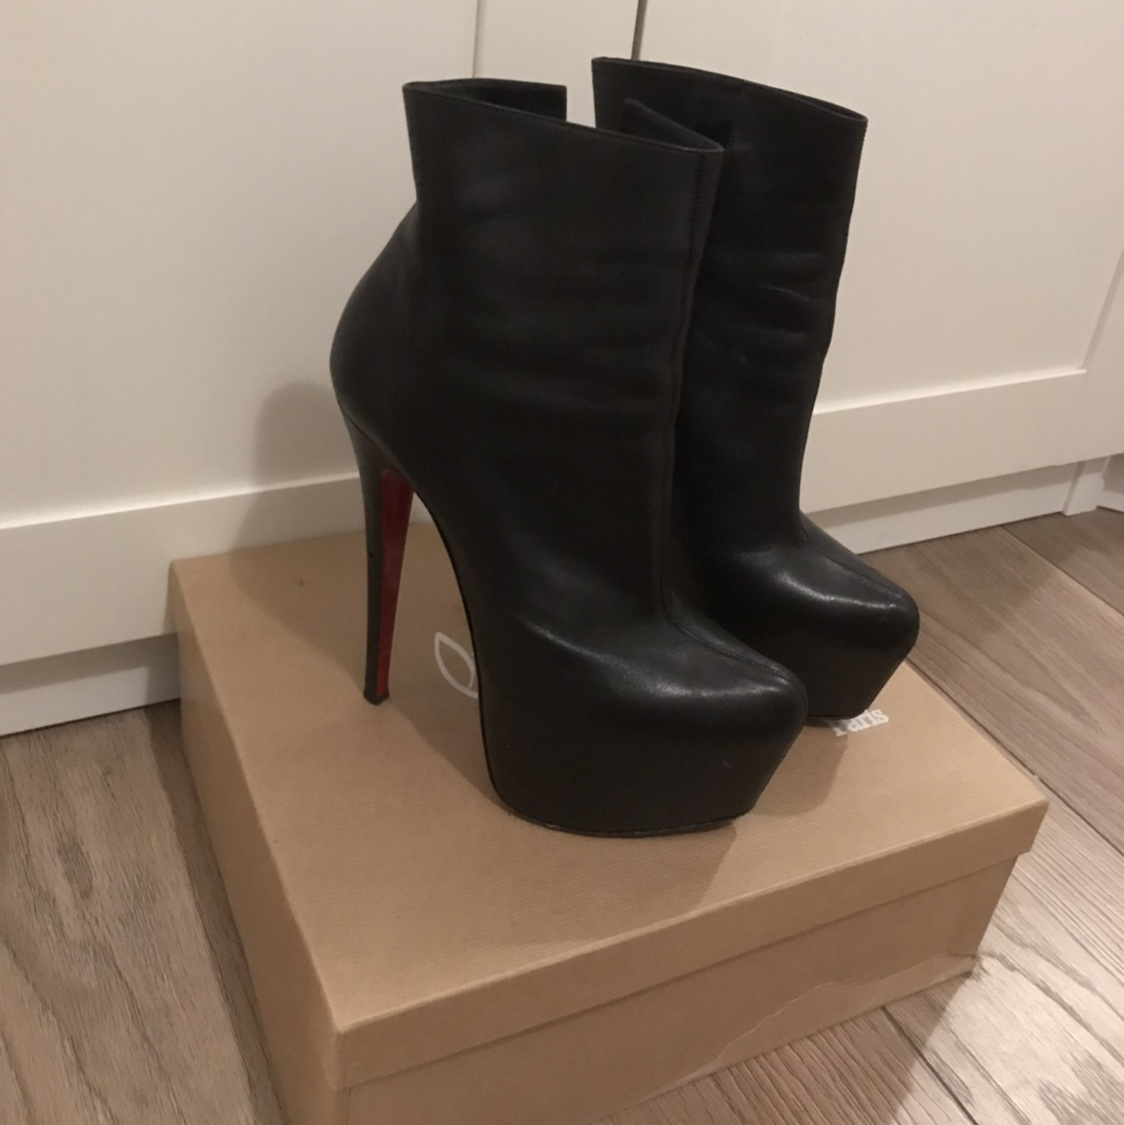 official photos 0bb36 c75d9 Daf Booty Christian Louboutin heel boots. Size 5. My... - Depop